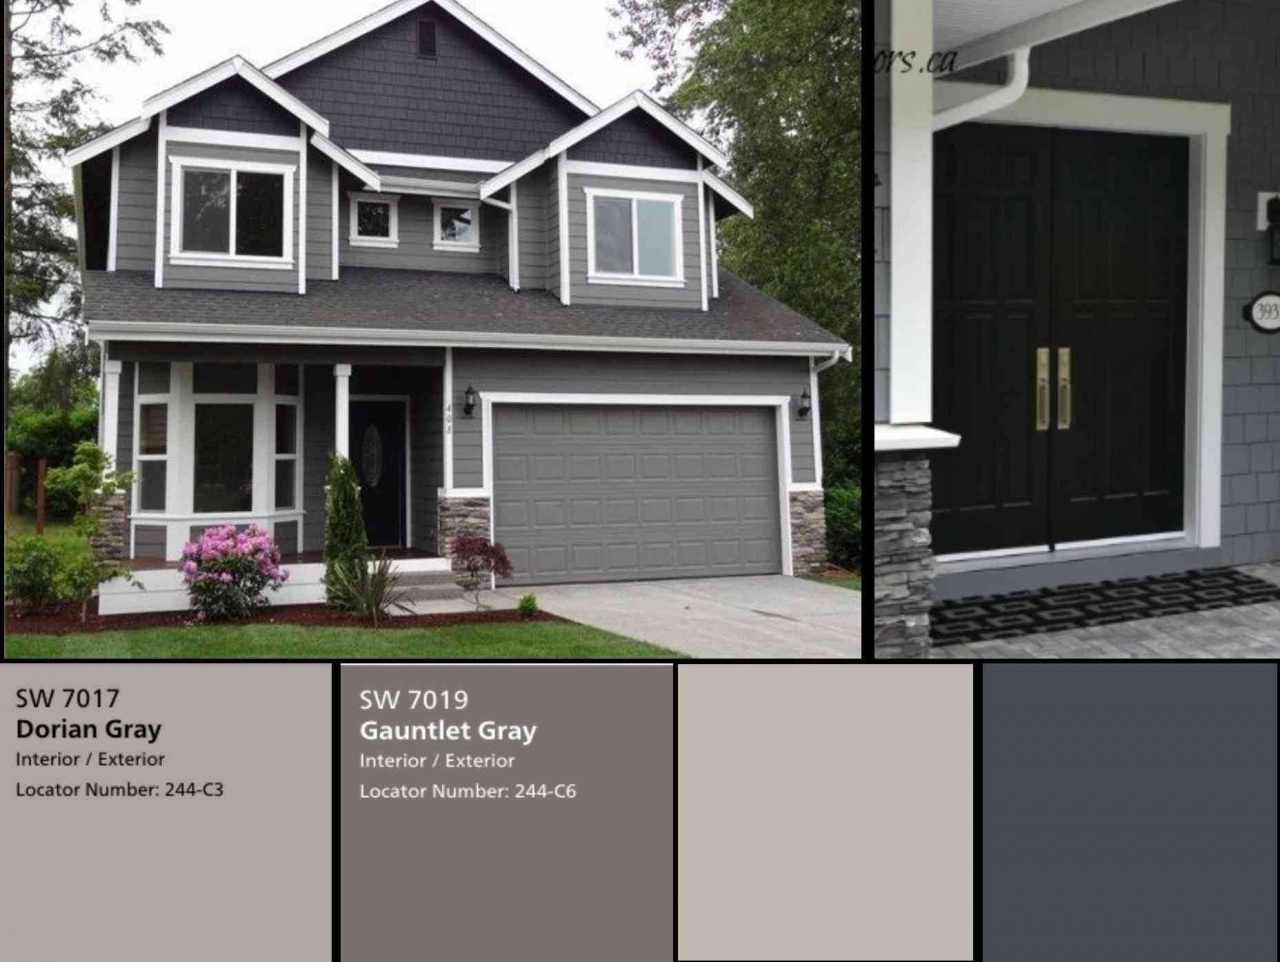 Vinyl Siding Ideas For Small Homes How To Use Green For Your House S Exterior Equalmarriagefl Vinyl From Vinyl Siding Ideas For Small Homes Pictures